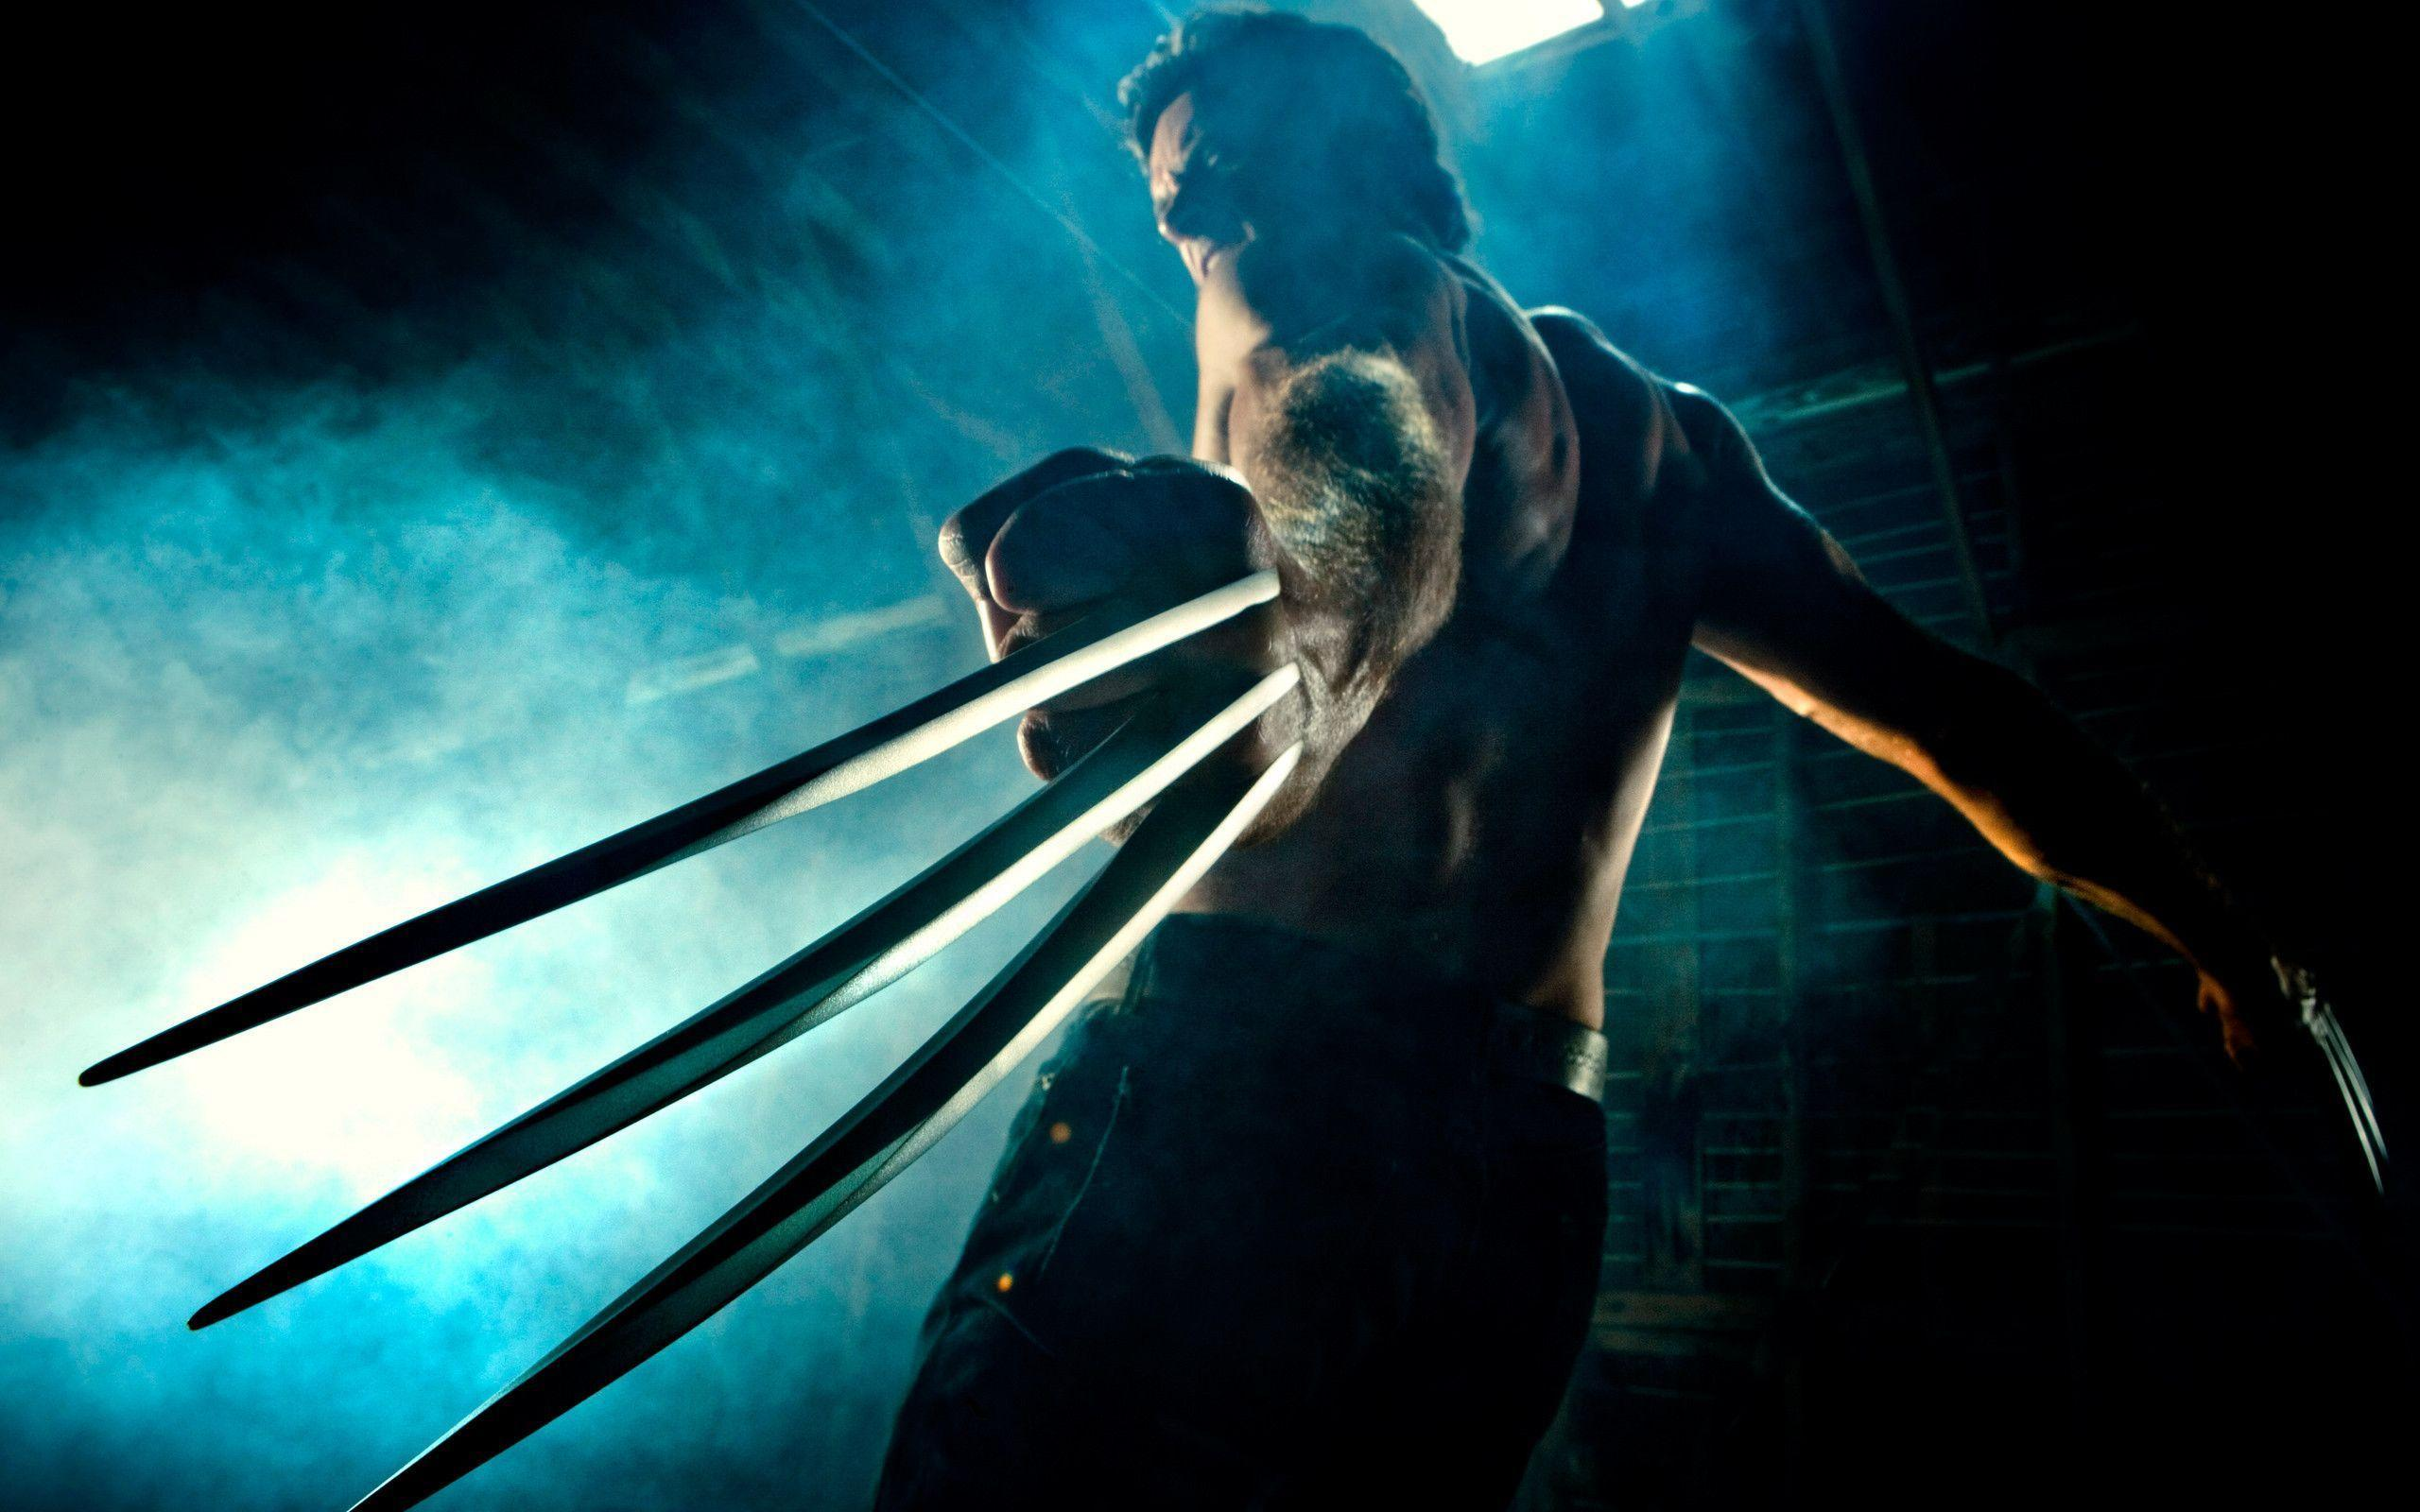 Wolverine Wallpaper - Full HD wallpaper search